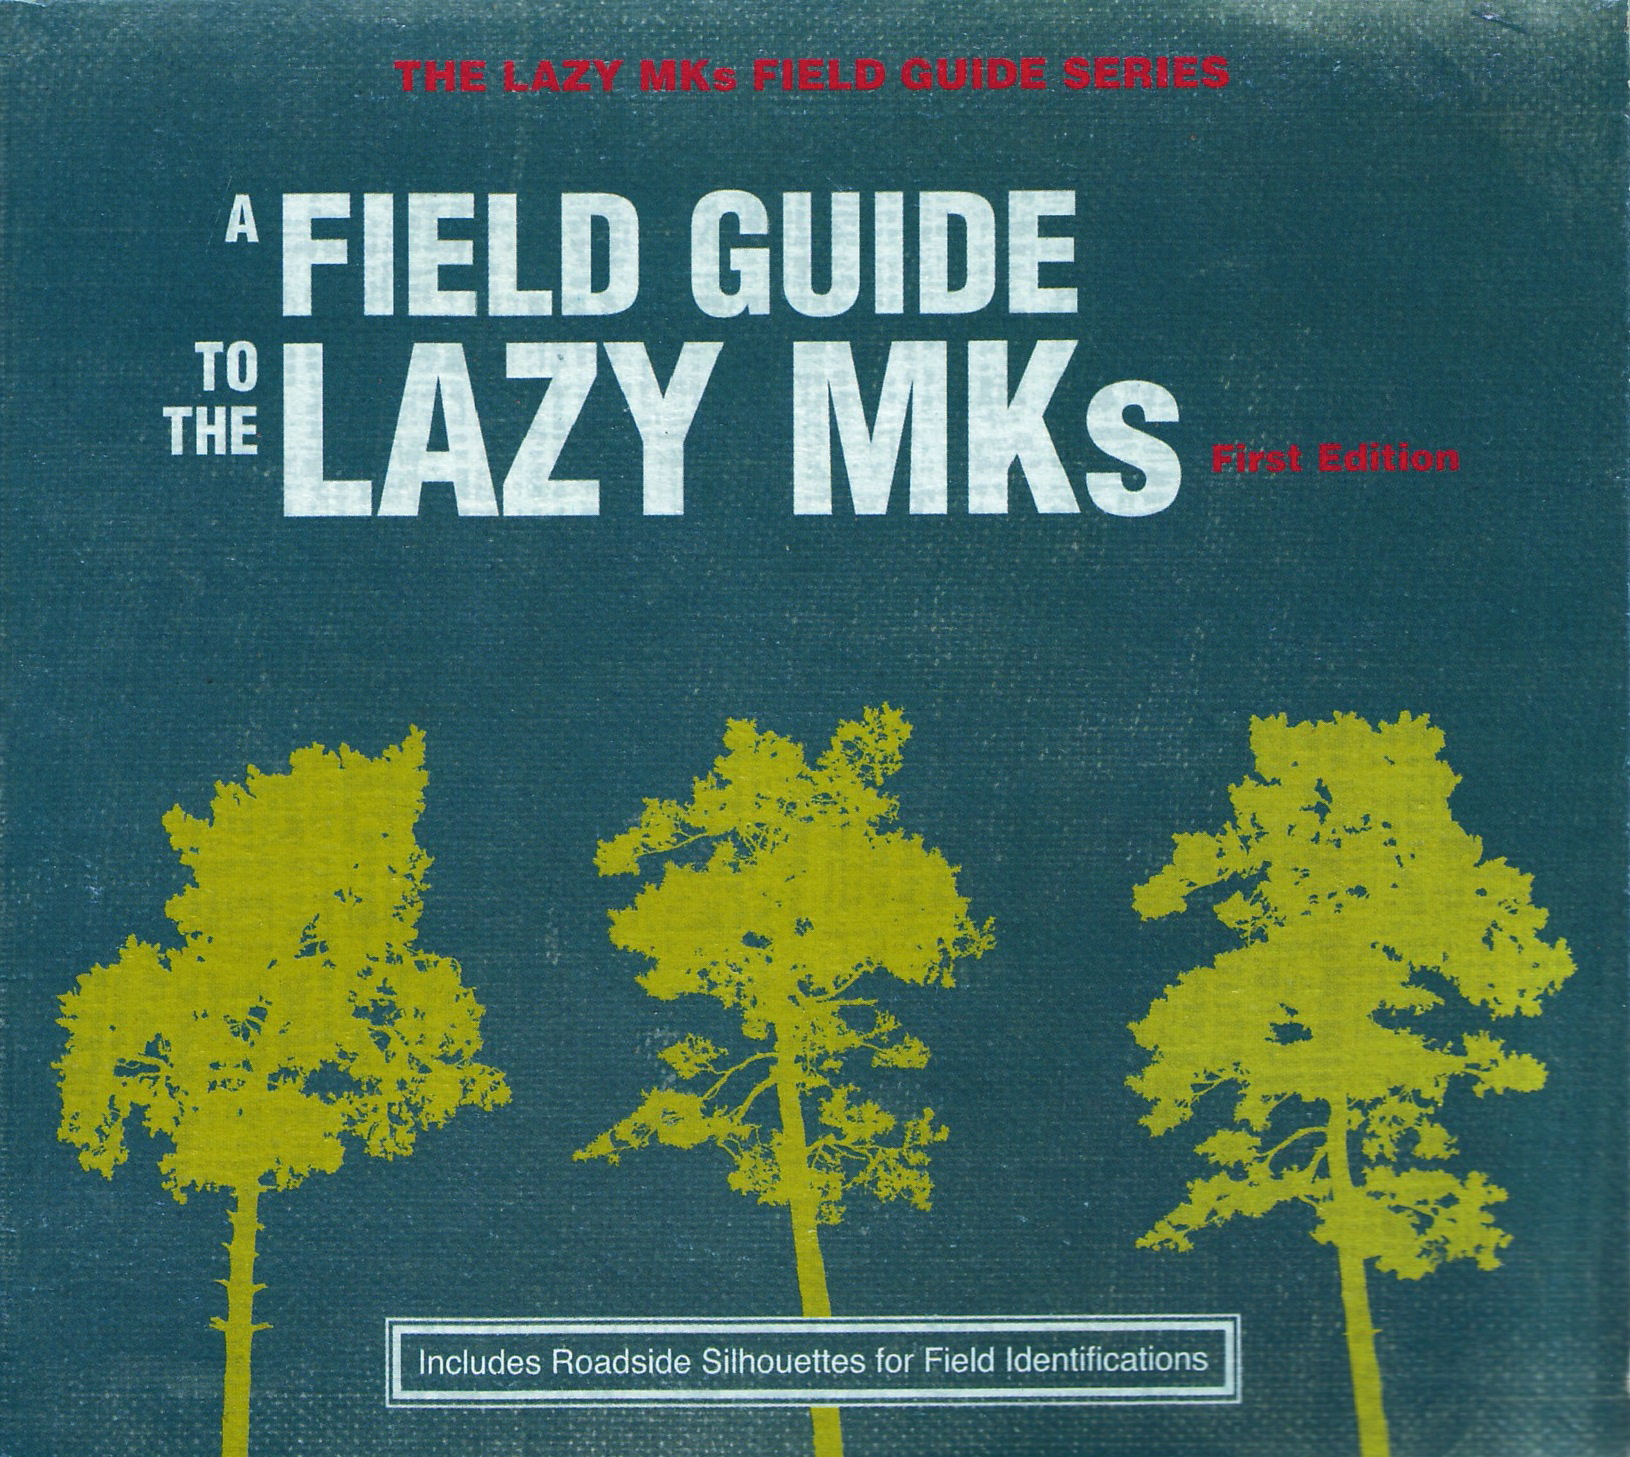 Lazy MK's - A Field Guide .JPG